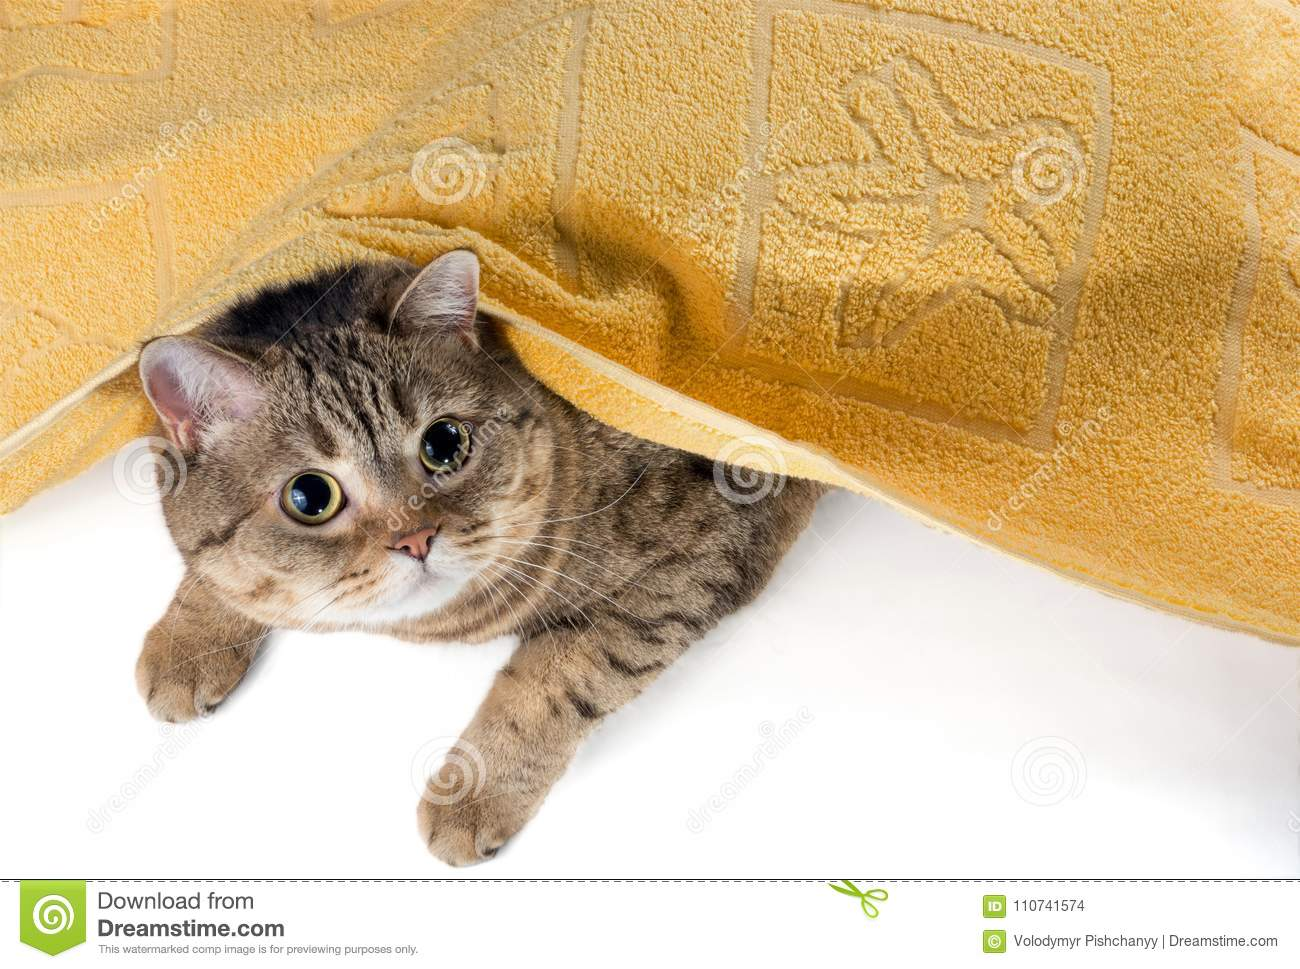 The cat lies under a yellow terry towel